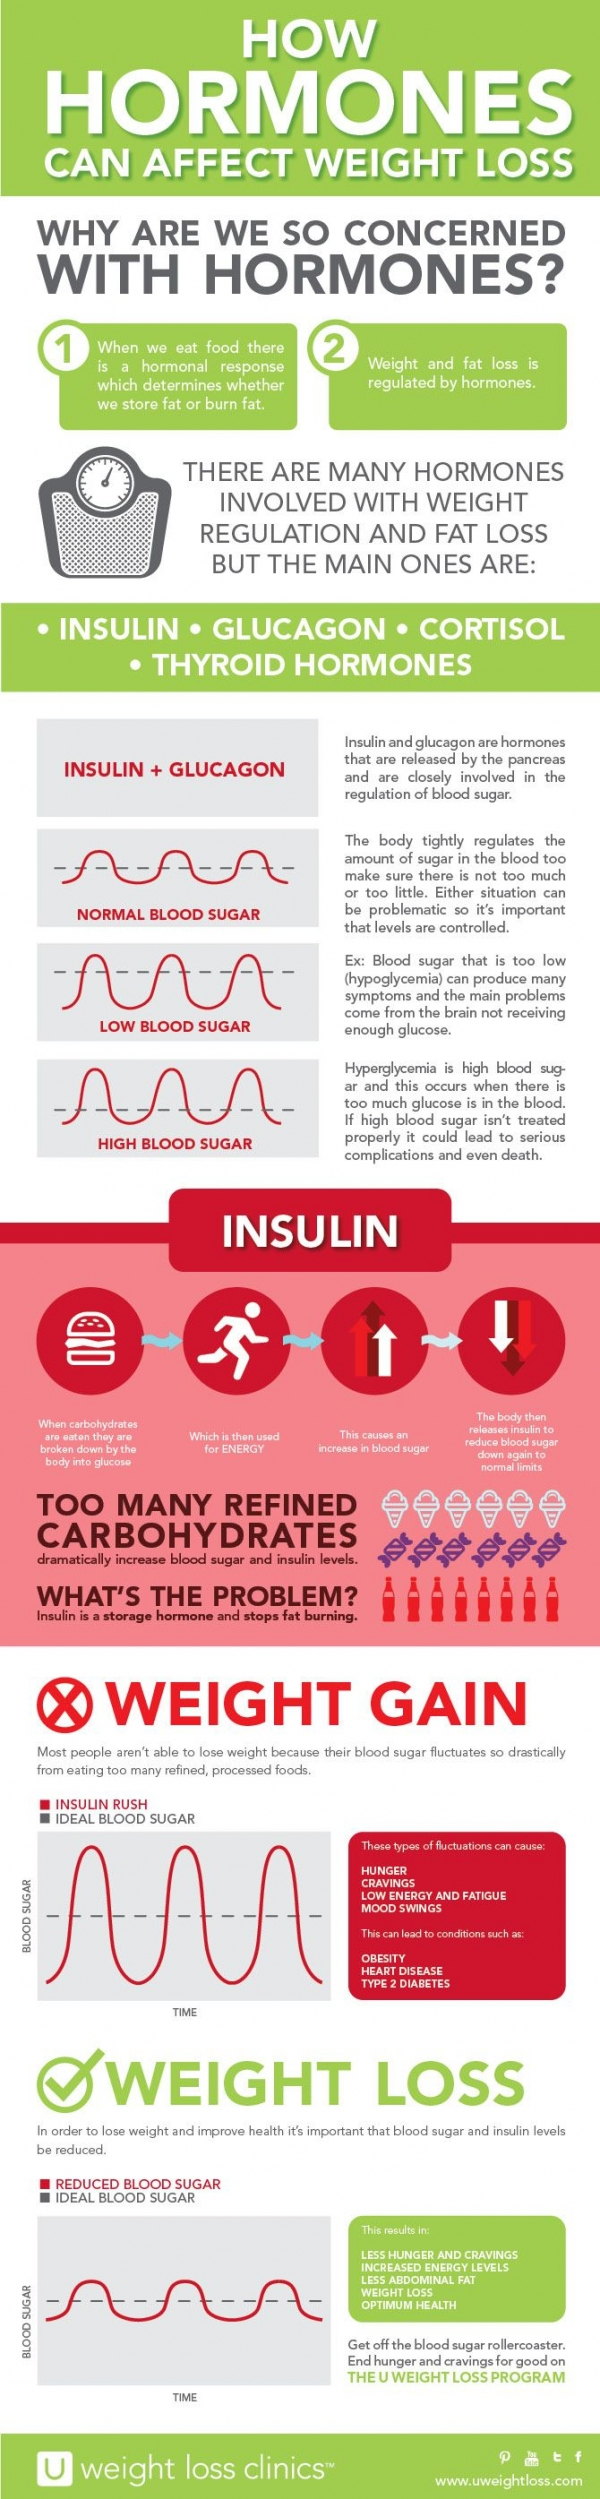 Secretropin and weight loss have